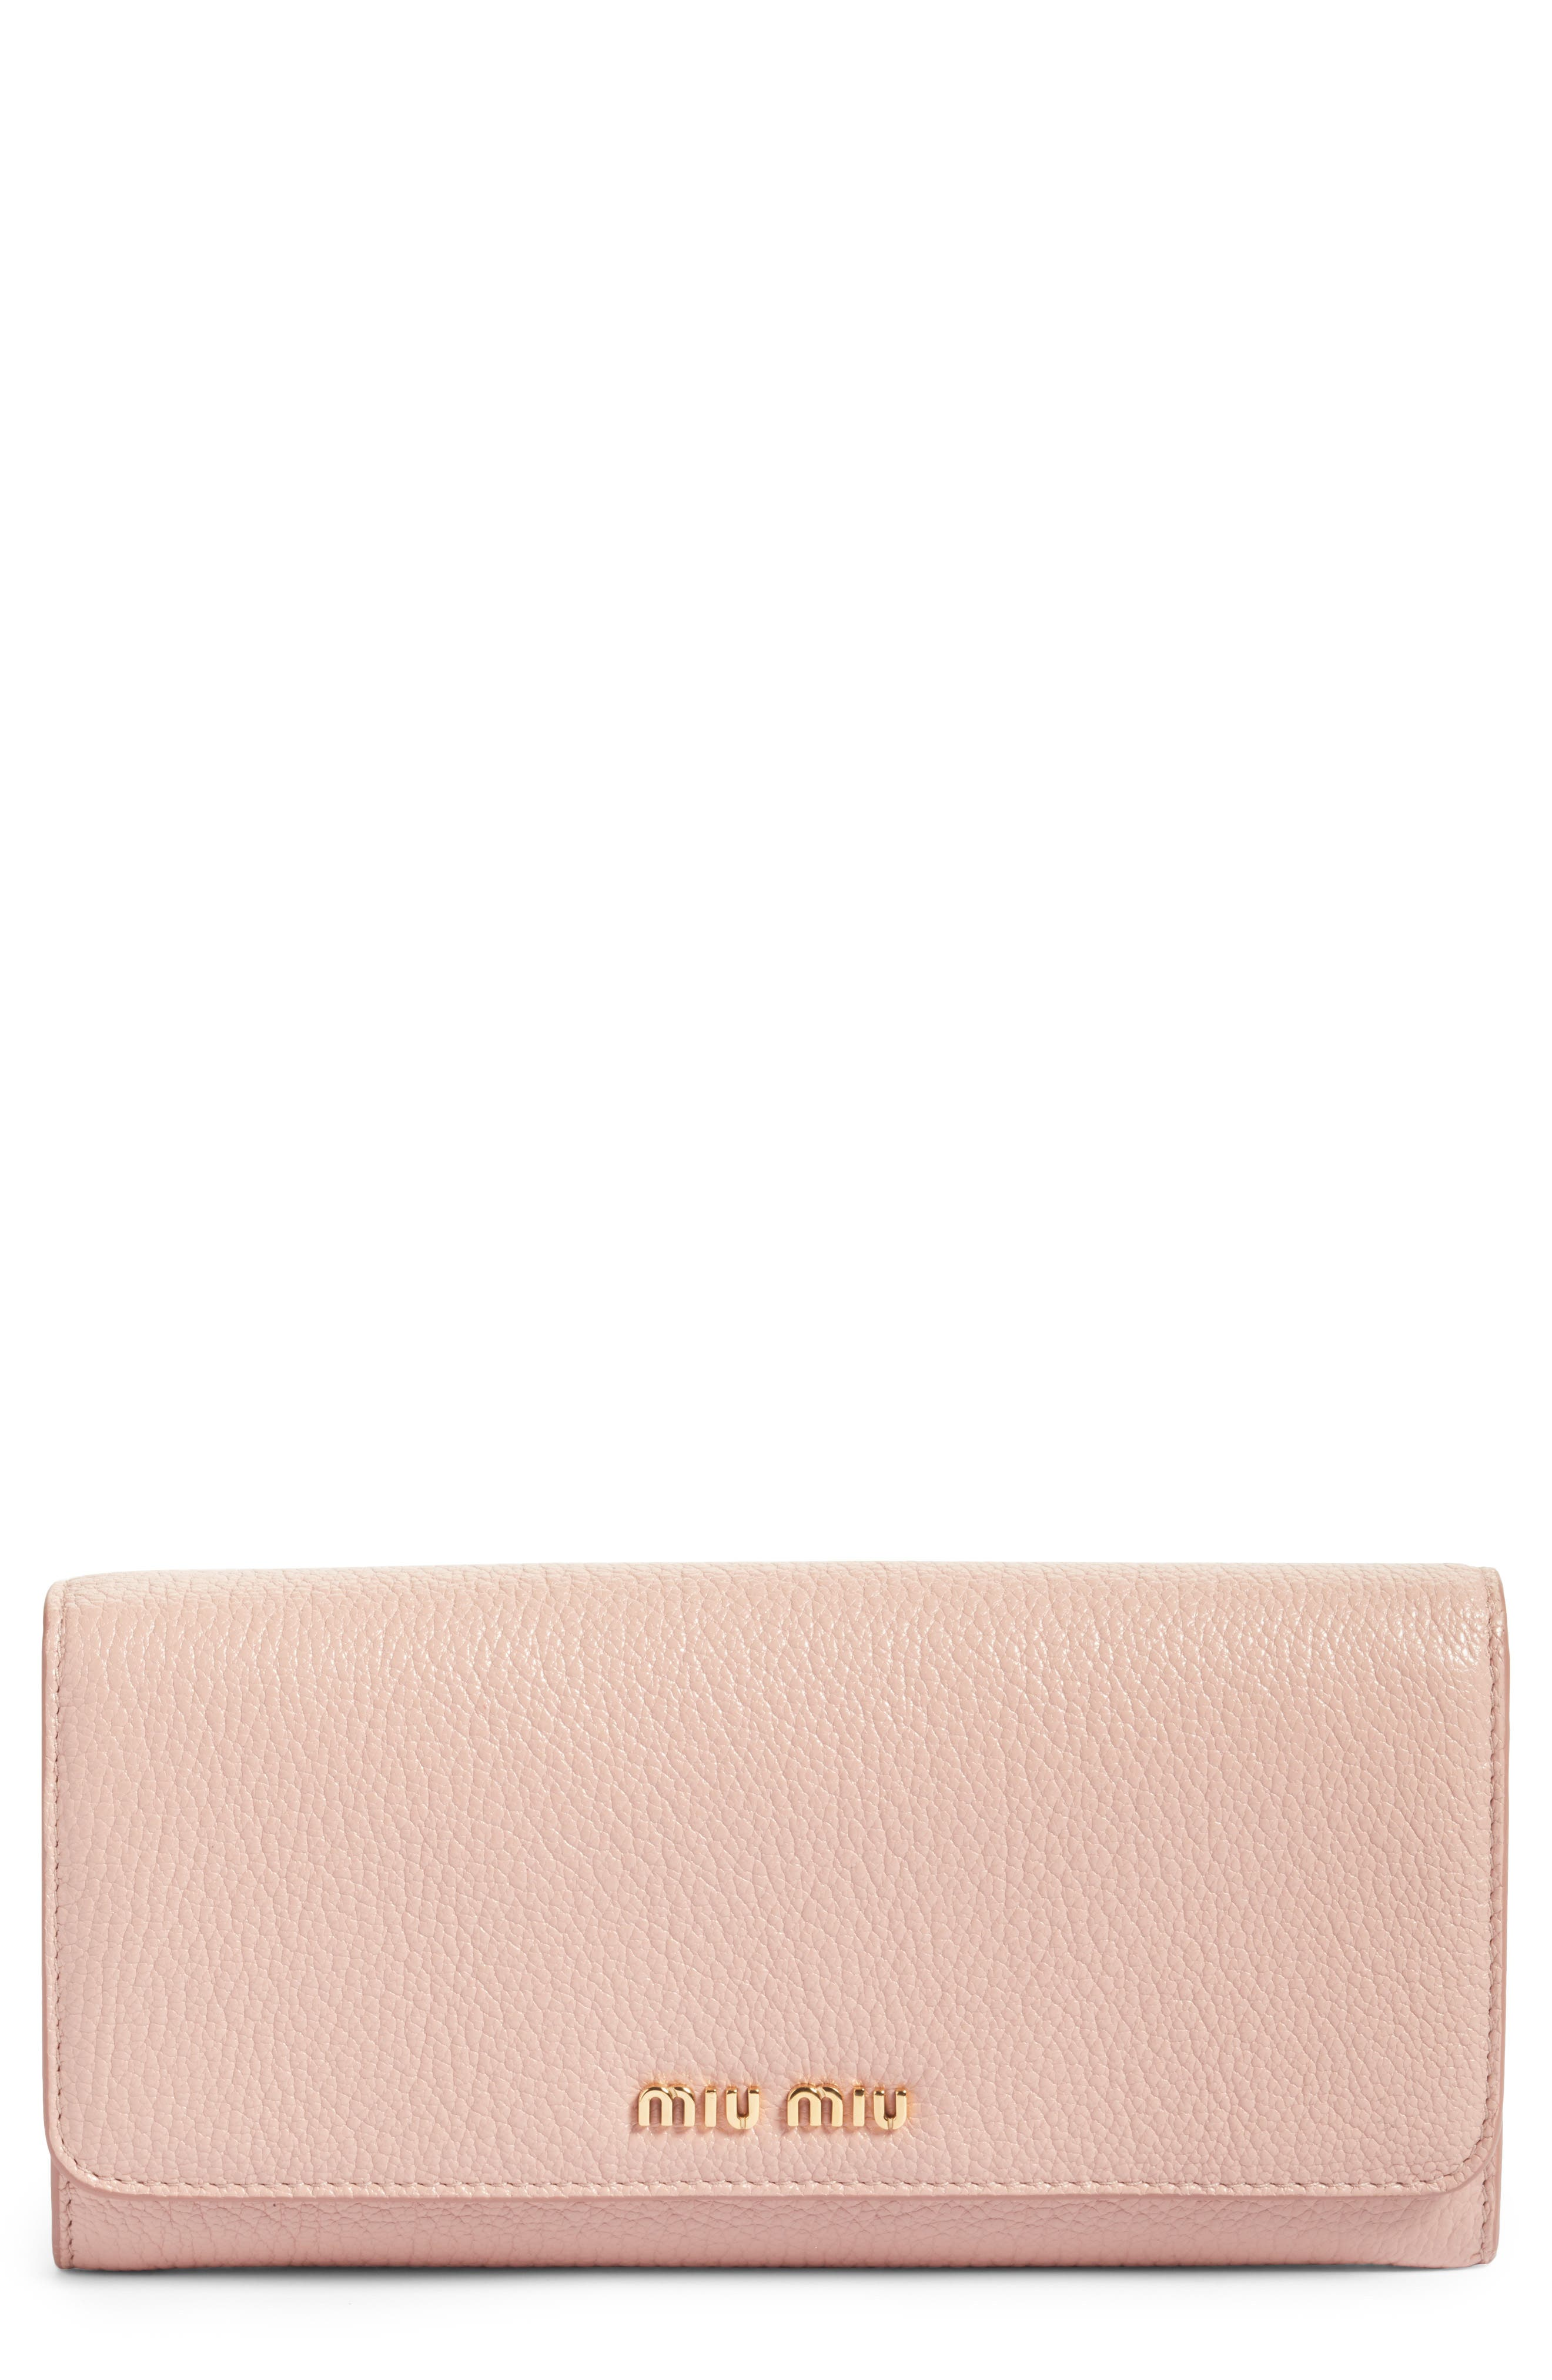 Miu Miu Madras Leather Continental Wallet